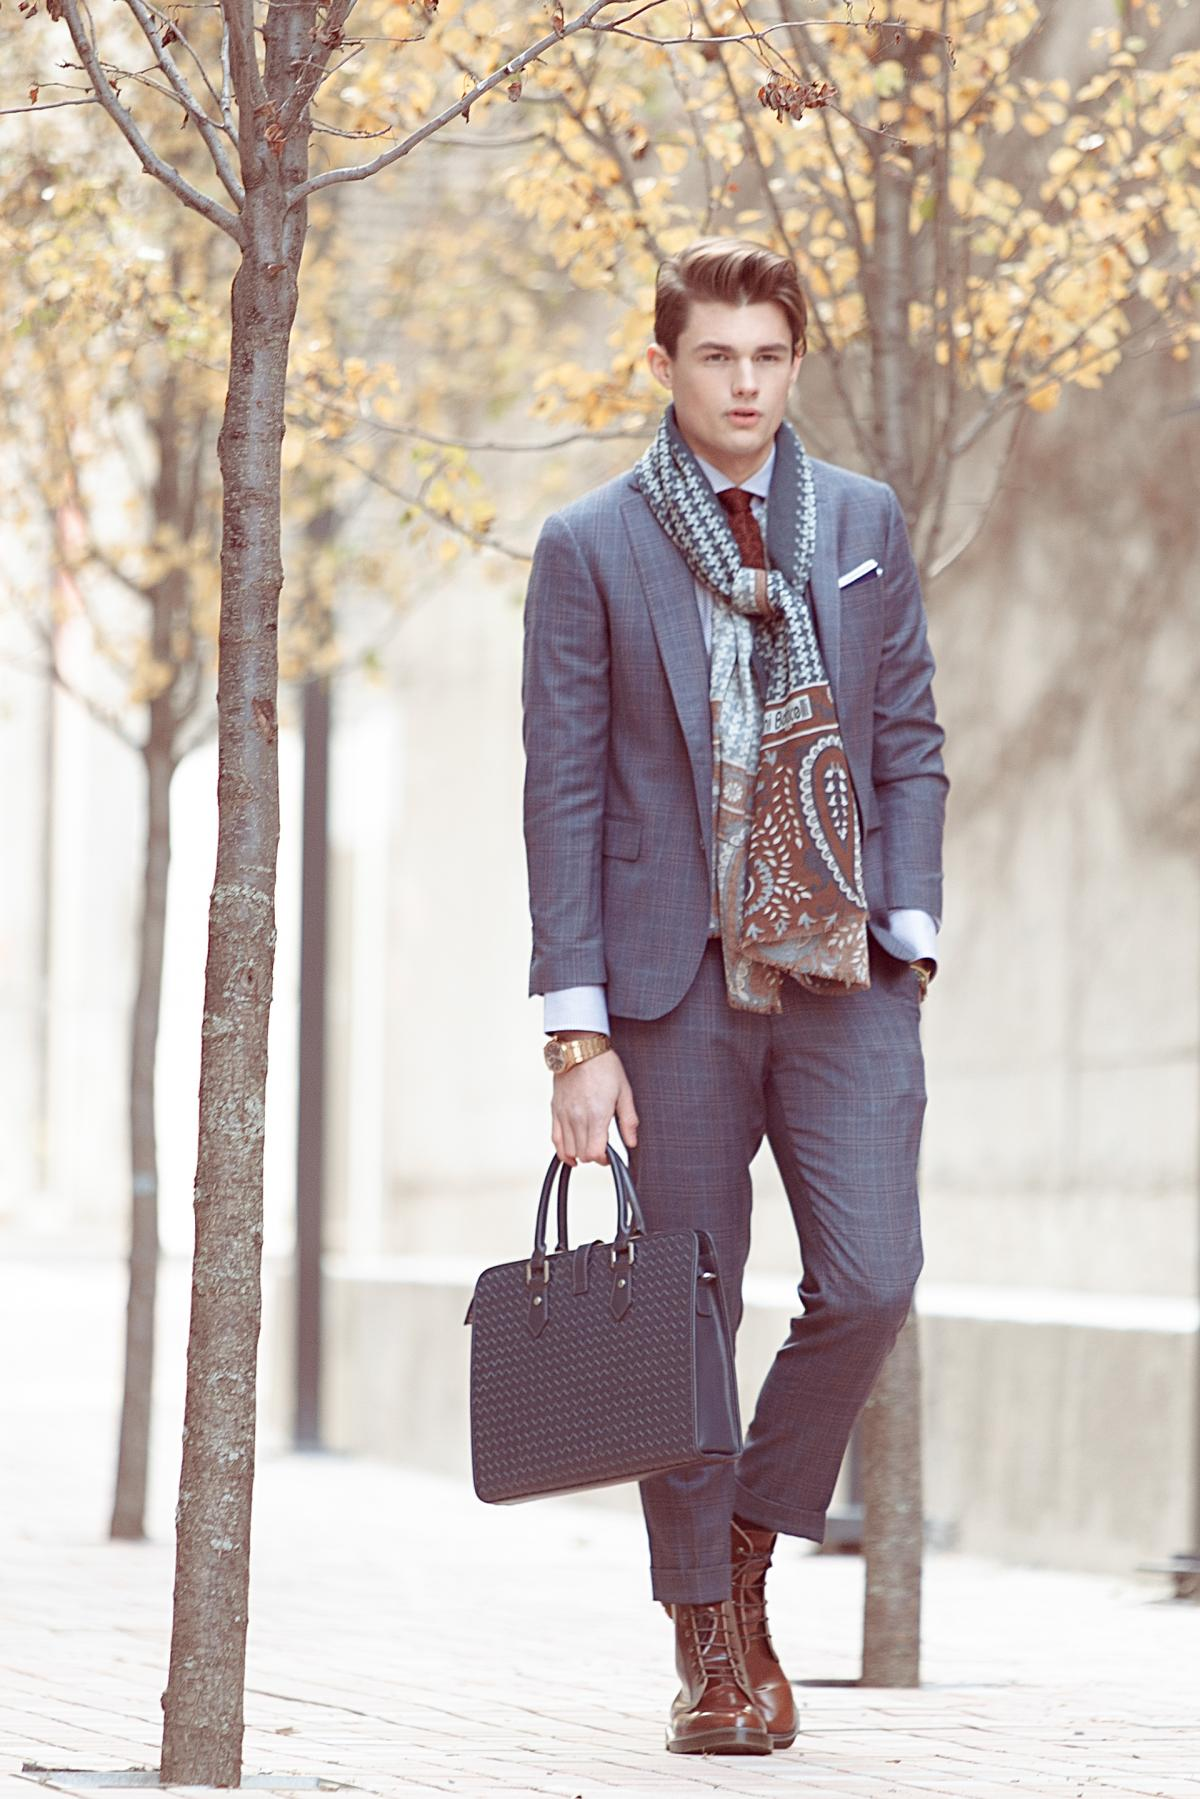 Autumn or even winter look. Grey suit with printed scarf. Very stylish outfit